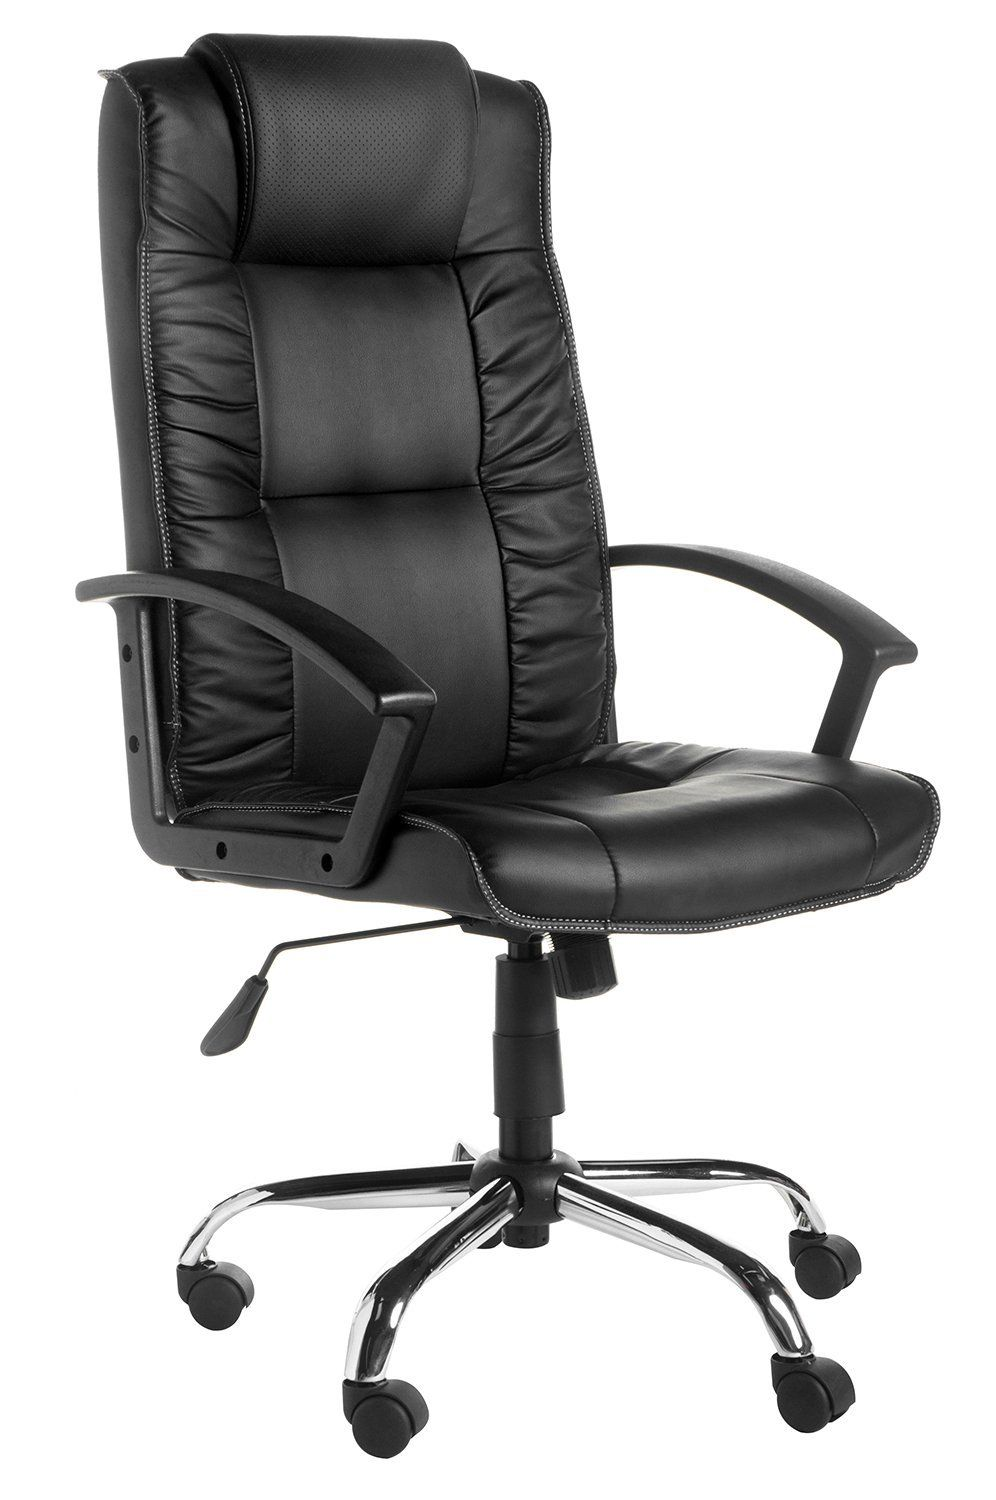 Merax boss chair